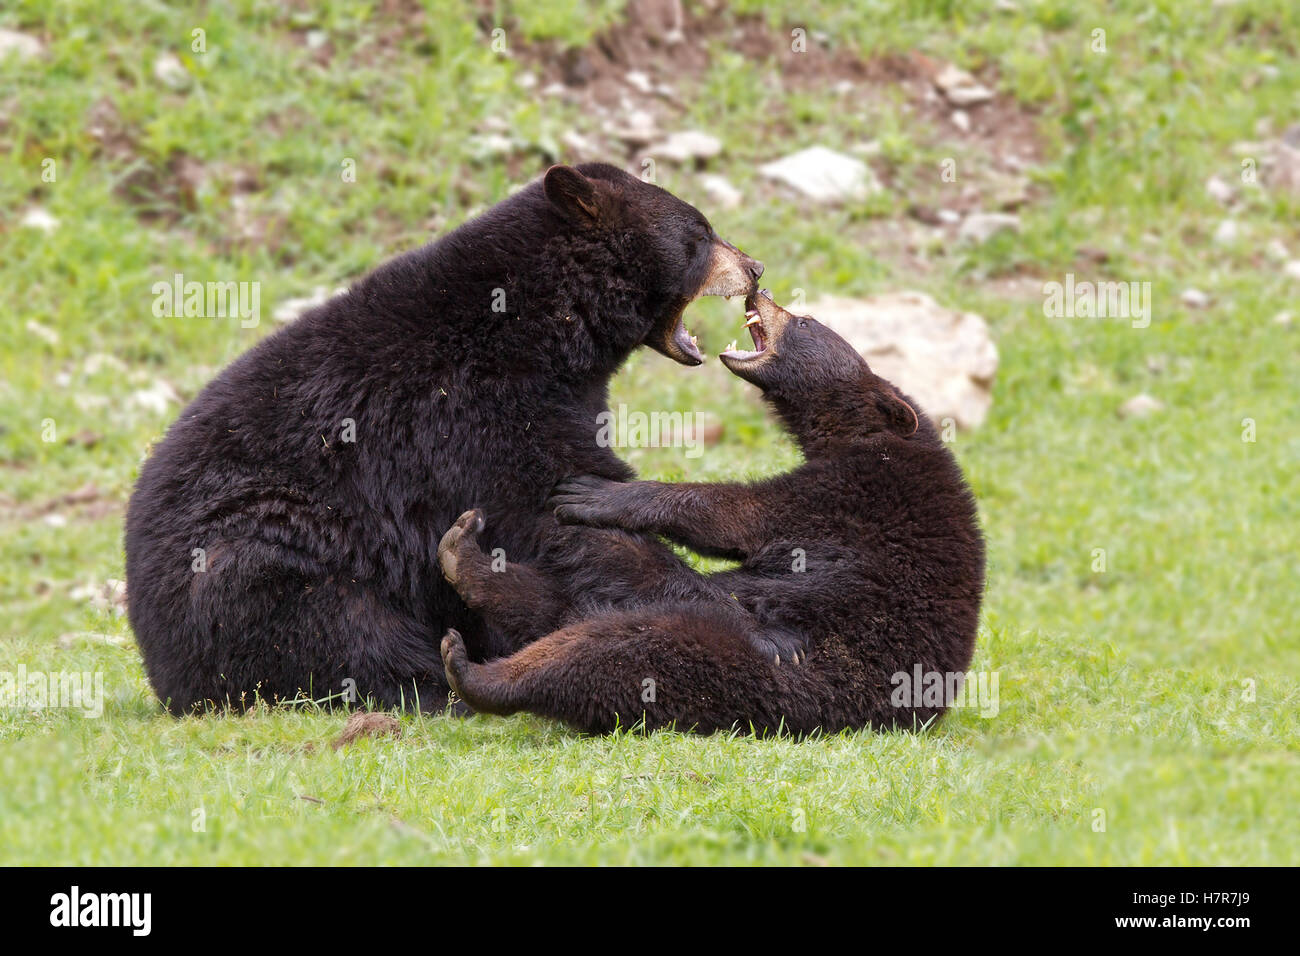 Black bears playing with each other in Canada - Stock Image